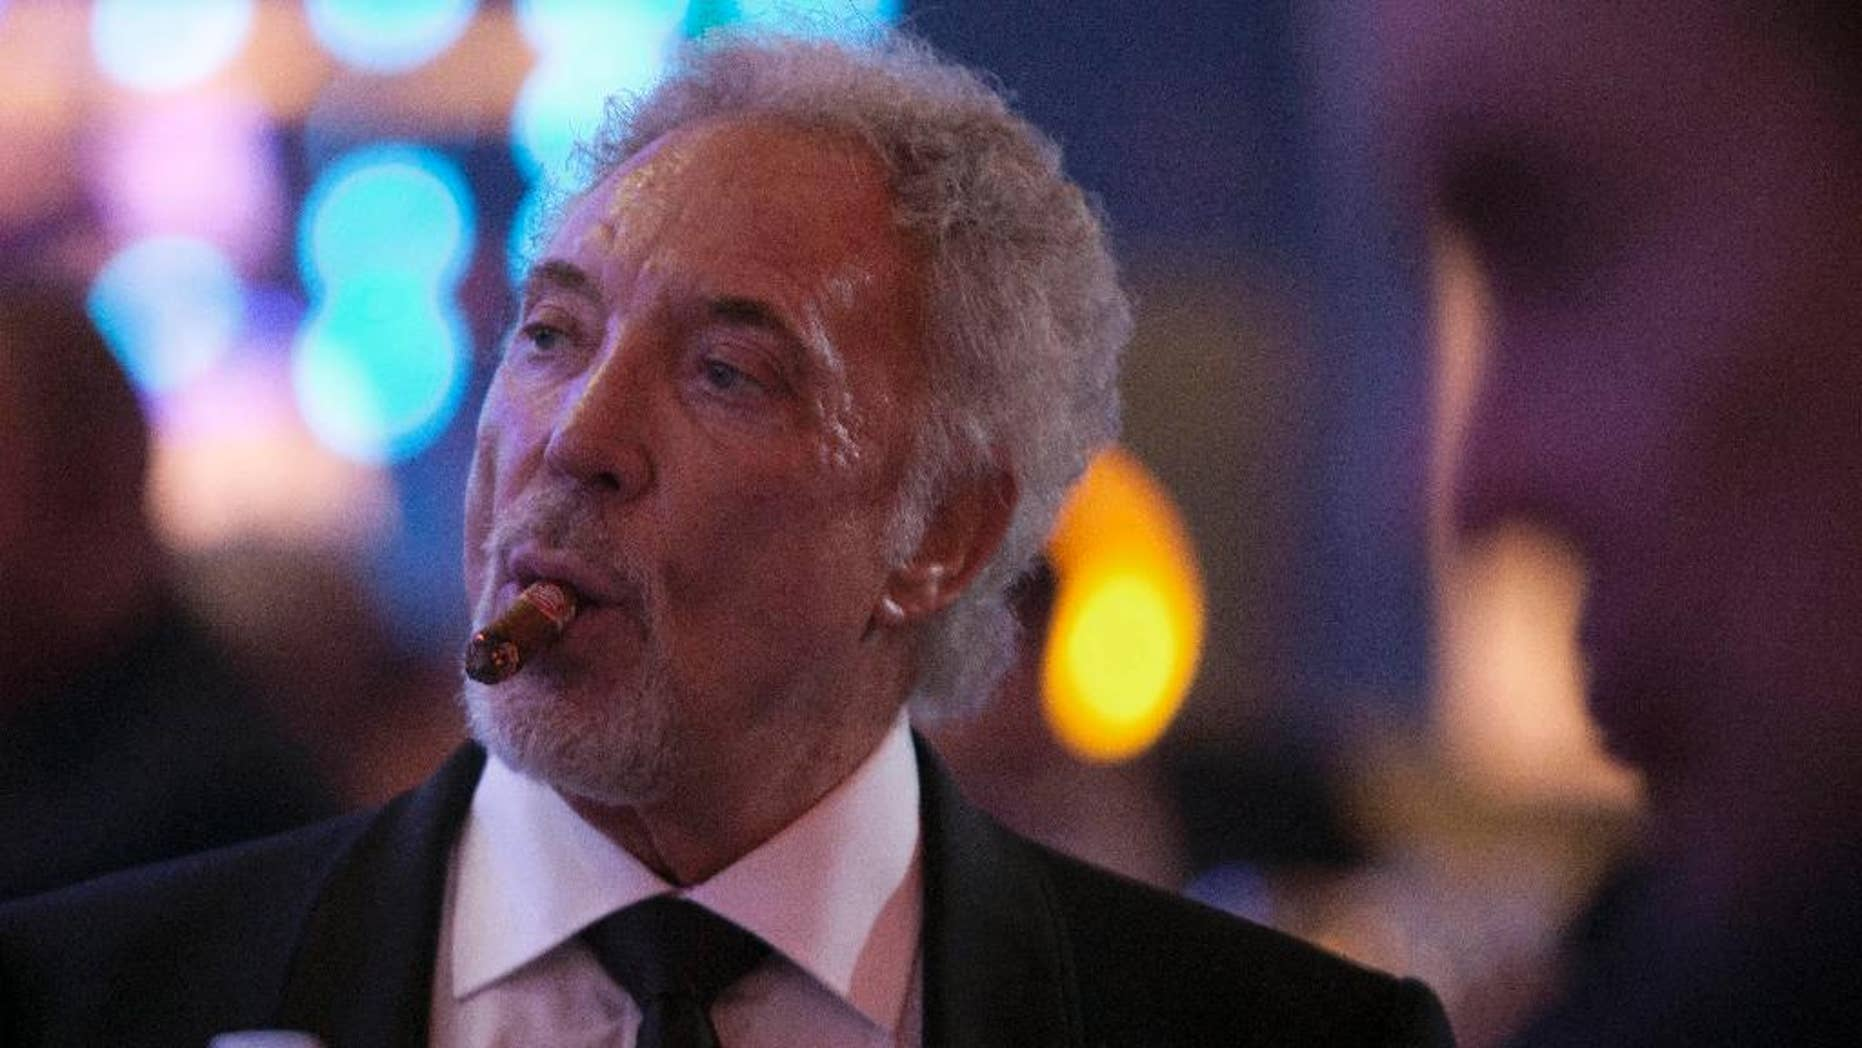 """Welsh crooner Tom Jones smokes a cigar during a gala dinner marking the end of the 16th annual Cigar Festival in Havana, Cuba, Friday, Feb. 28, 2014. The festival is a five-day bash that brings together hundreds of cigar sophisticates from around the world, and culminates with a gala and auction of humidors worth hundreds of thousands of dollars. Tom Jones was among the celebrity invitees at Saturday's auction and sang three songs for attending guests, including his signature """"It's Not Unusual.""""(AP Photo/Franklin Reyes)"""